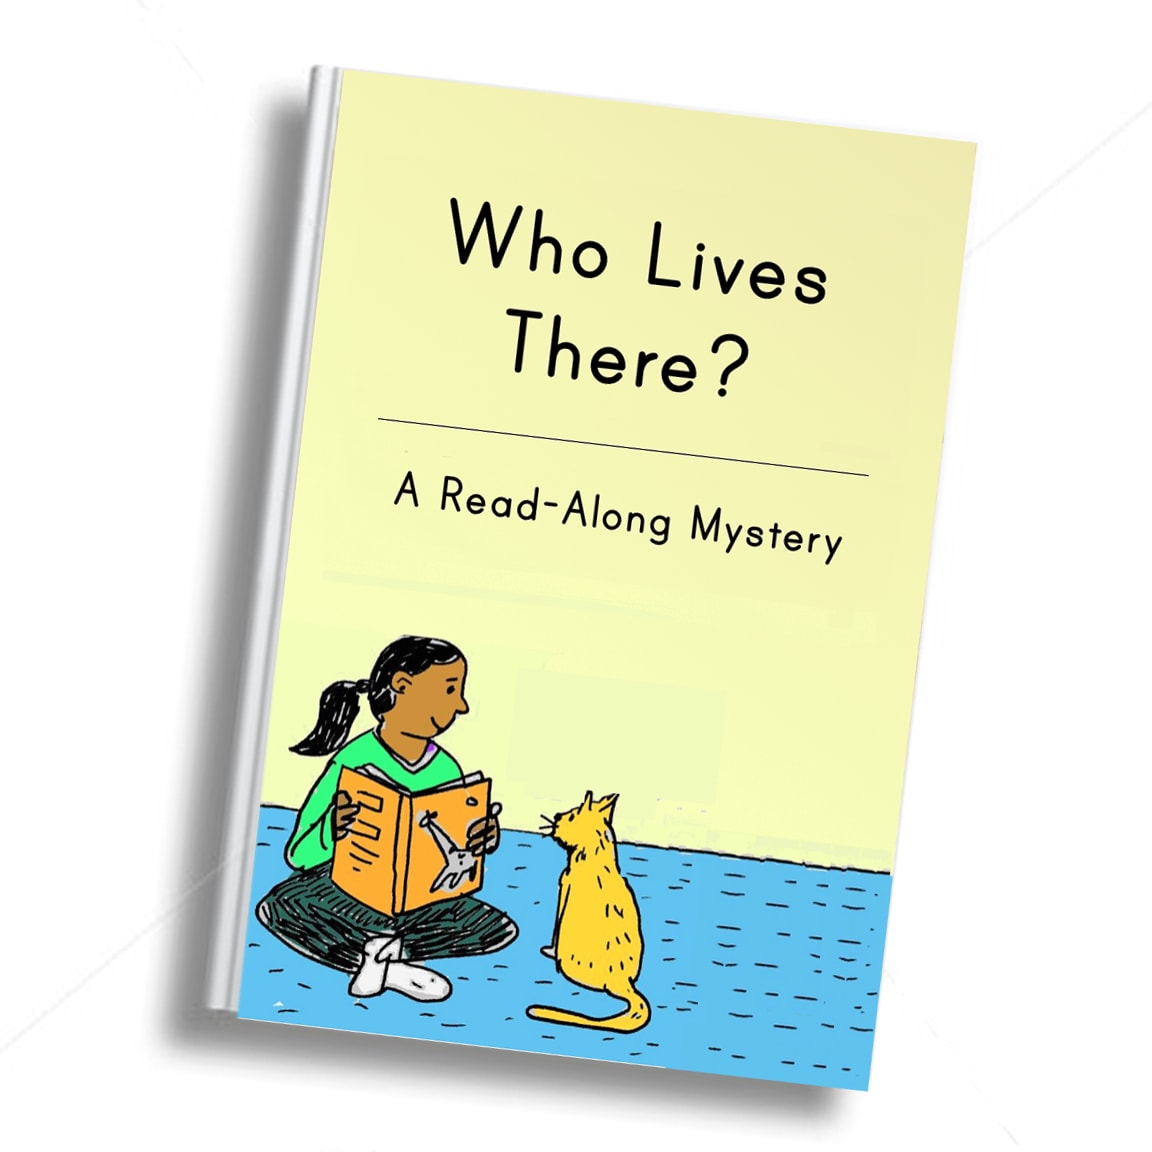 Read-Along Mystery 2 image